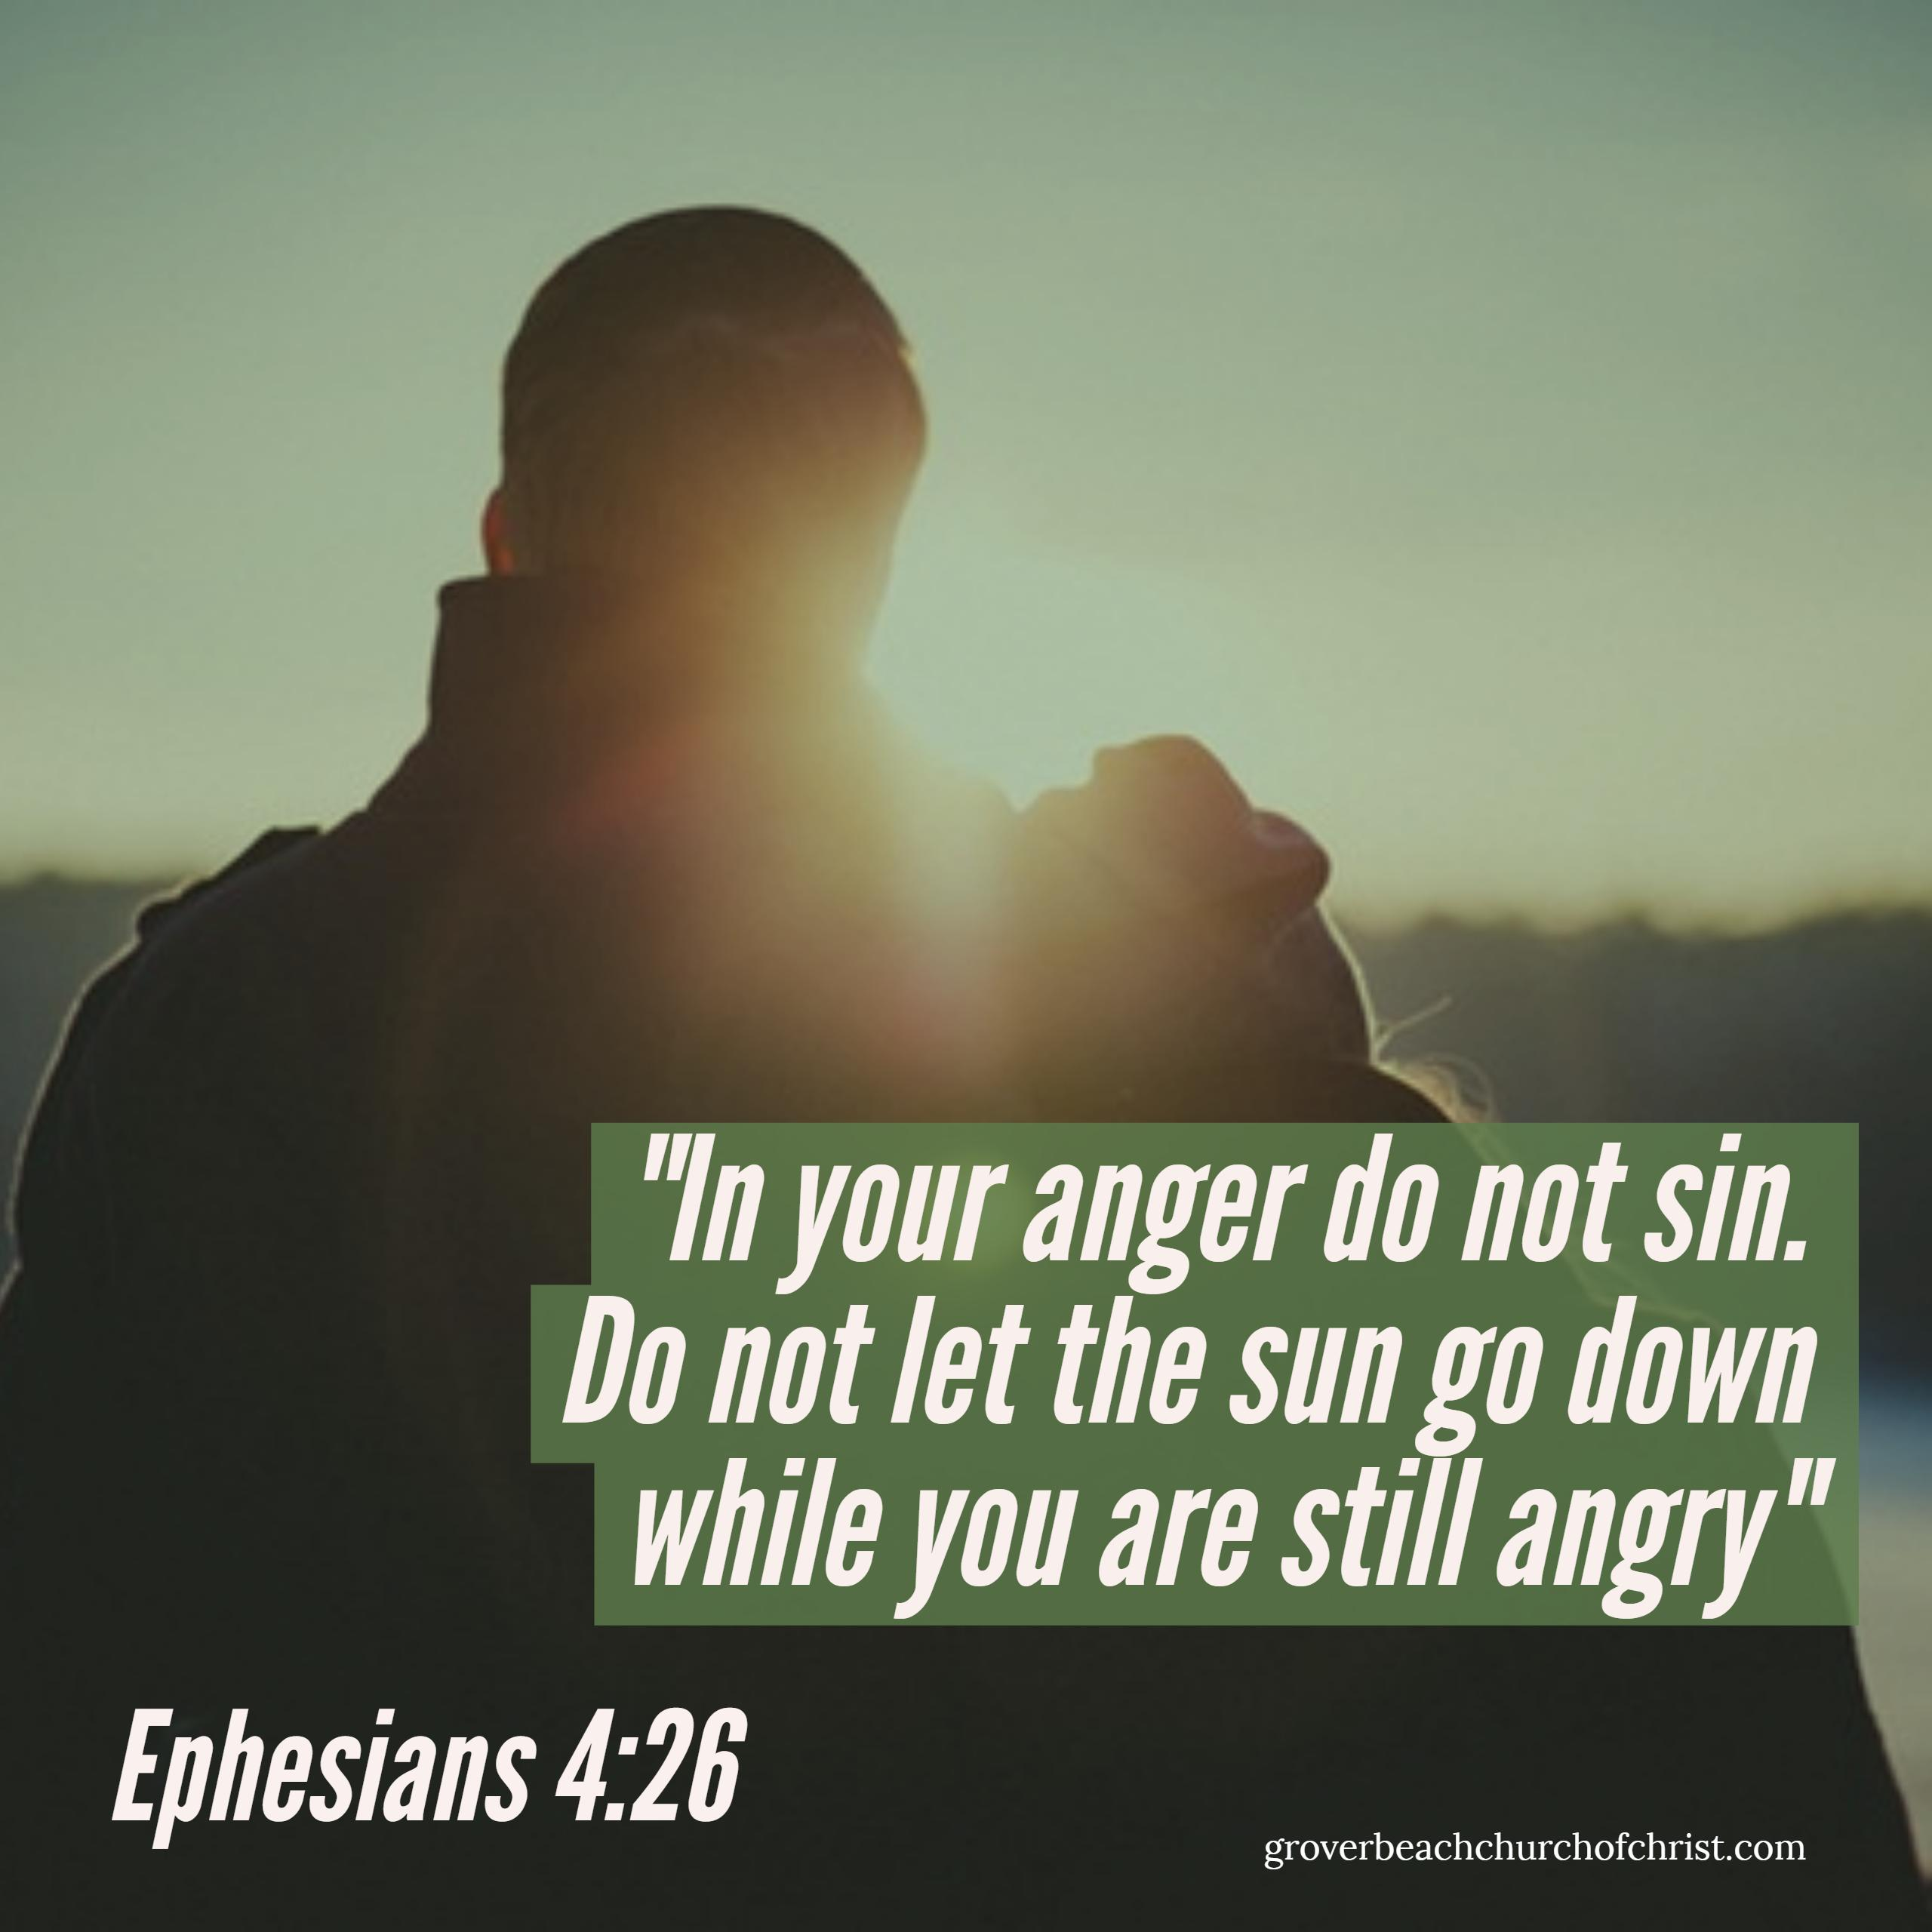 ephesians-4-26-dont-let-the-sun-go-down